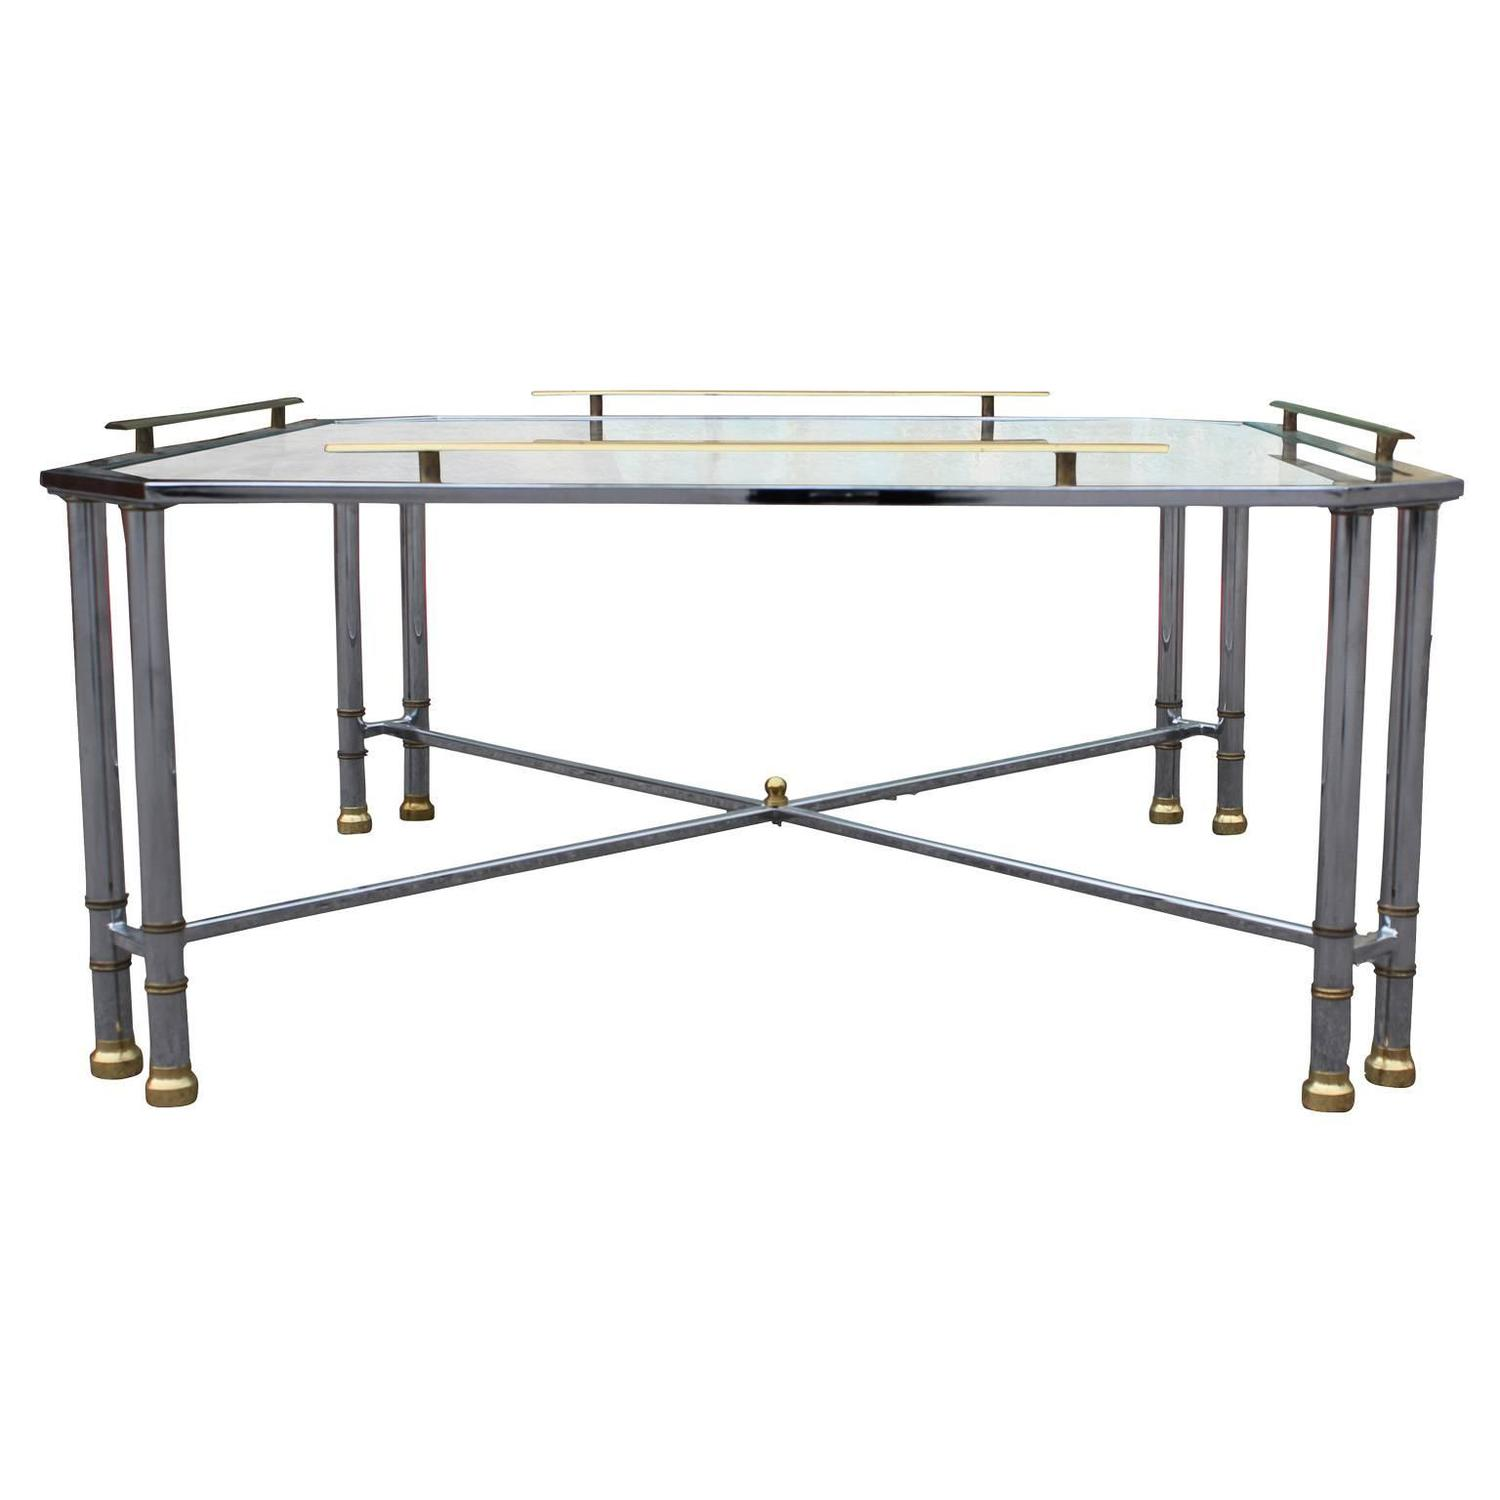 Elegant Chrome Brass And Glass French Square Coffee Table For Sale At 1stdibs